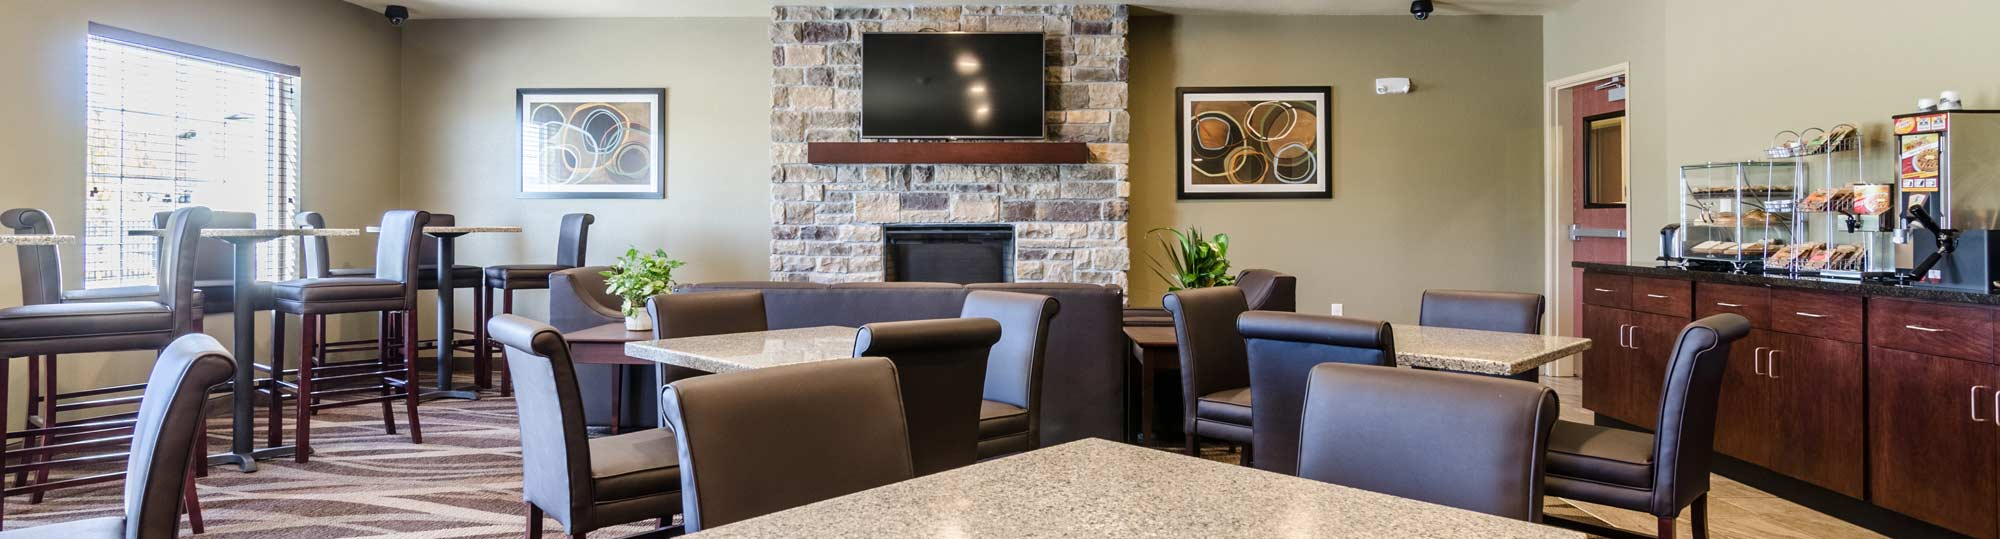 Cobblestone Inn and Suites Ord